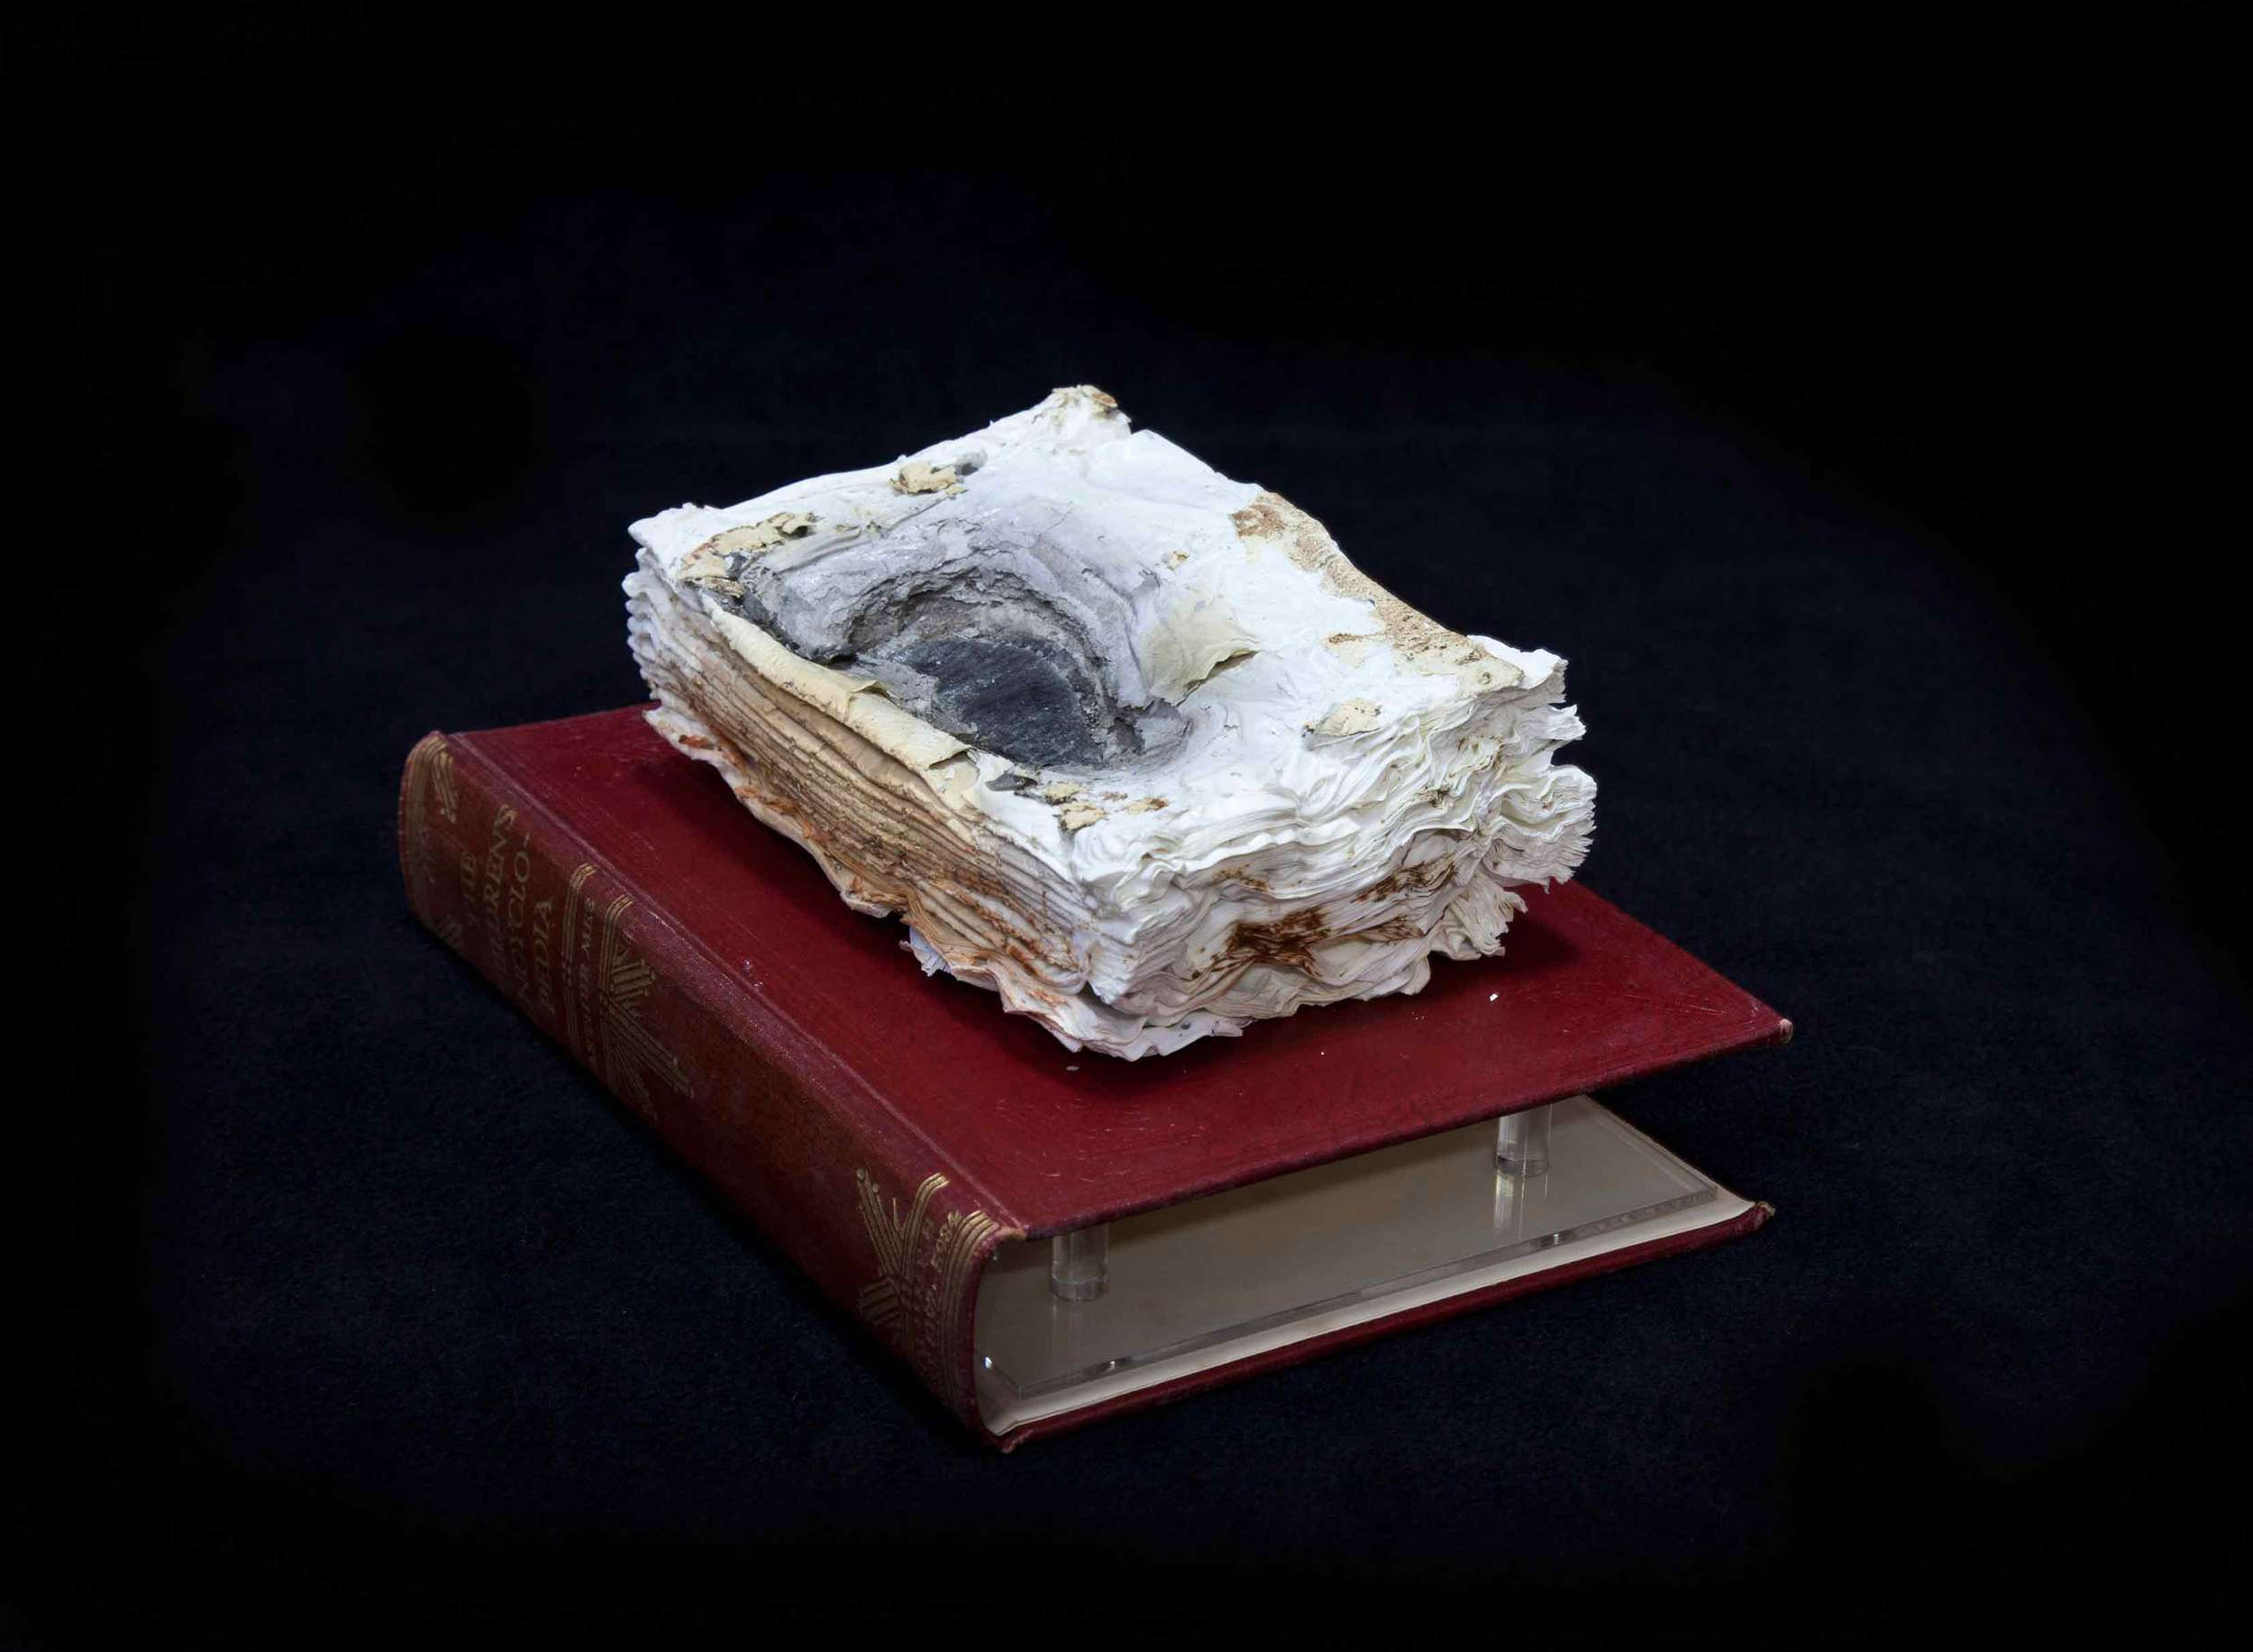 Cyrus Tang, Encyclopaedia Vol. 2, 2016, cremated book ashes and book cover,29 x 21 x 21 cm